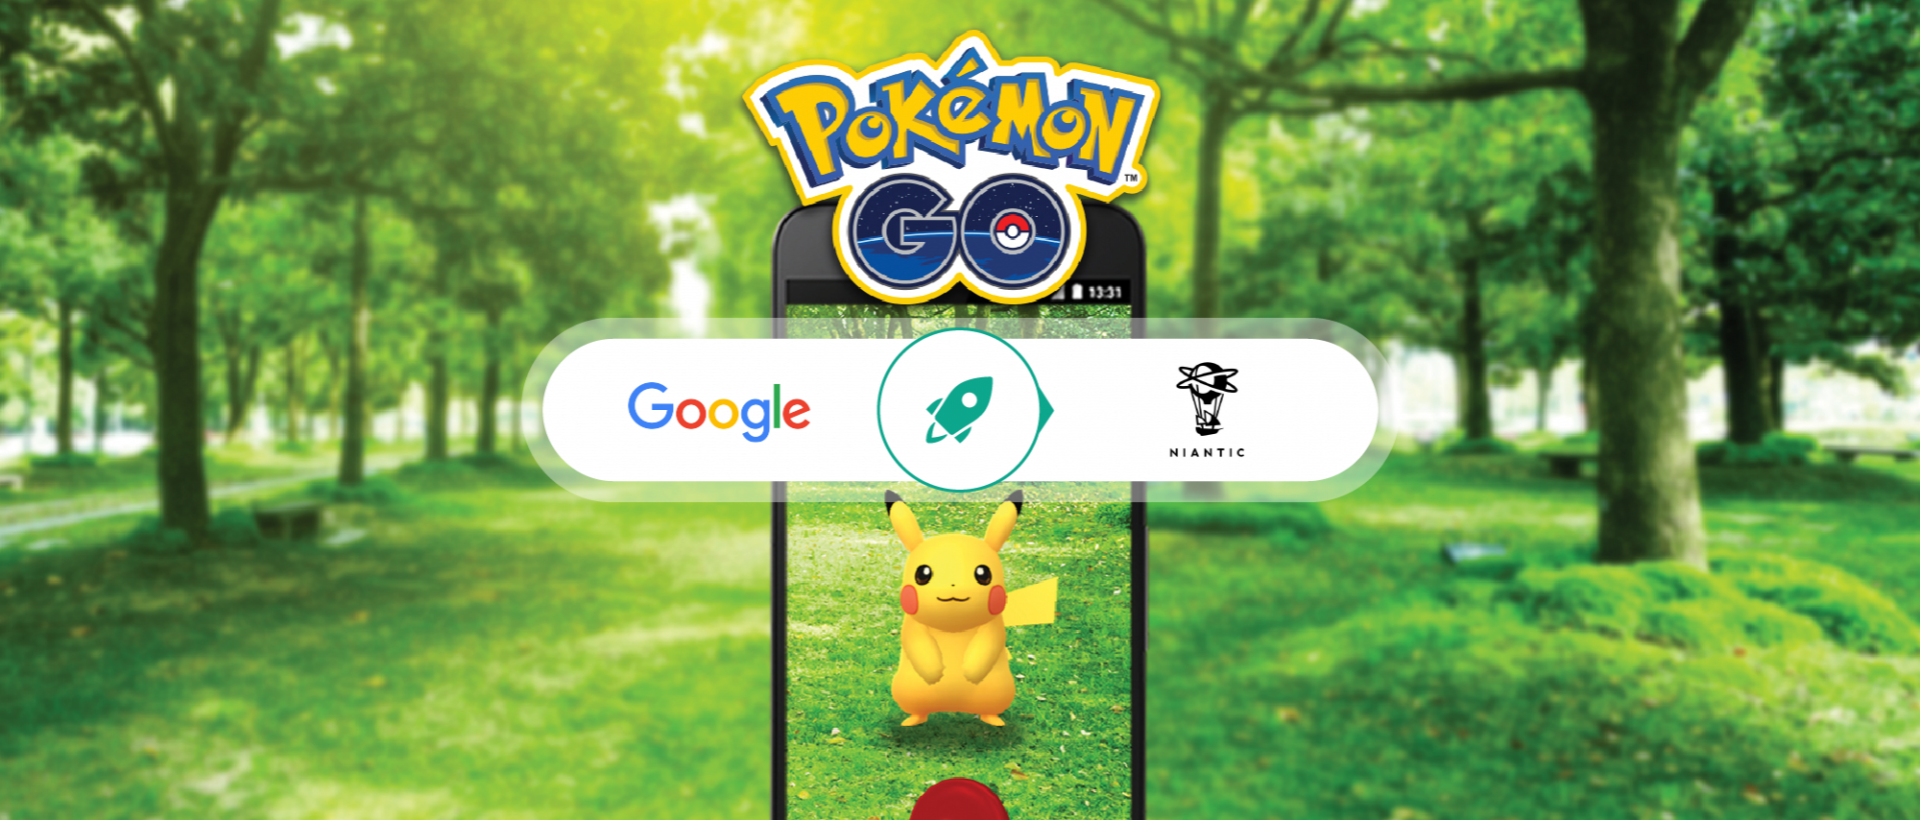 Did you know that Google was behind the company that created Pokémon Go?